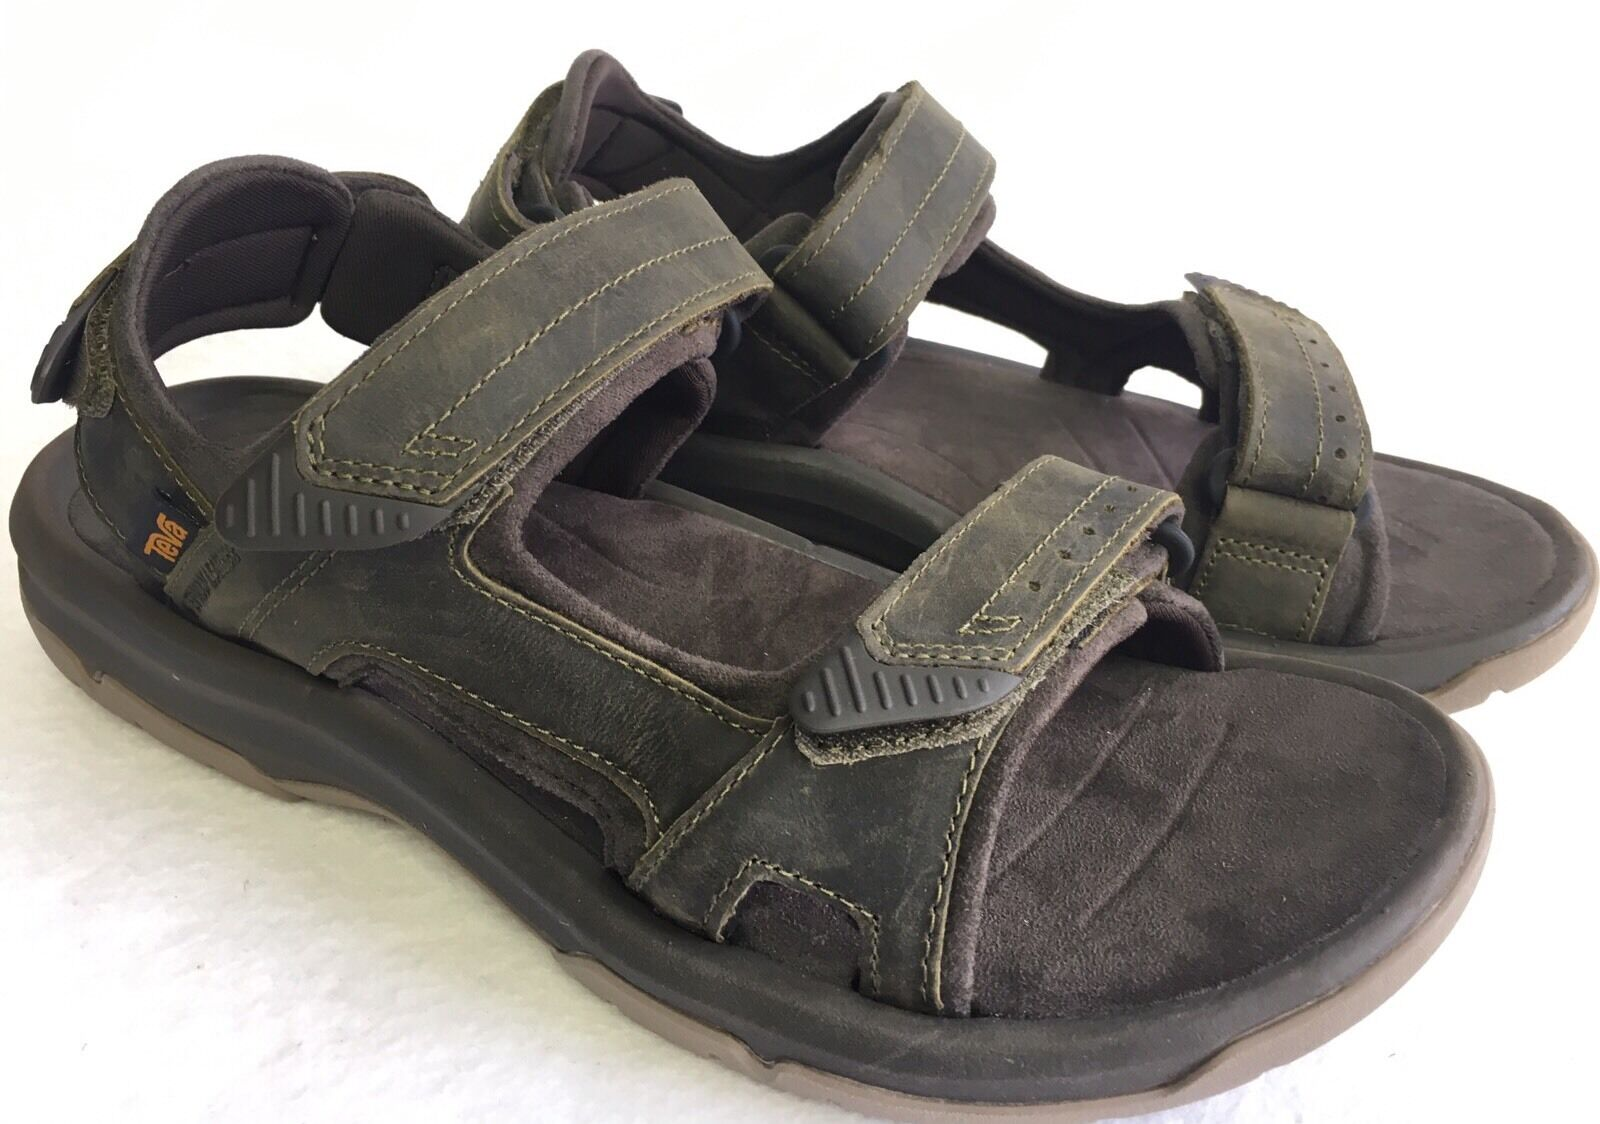 TEVA LANGDON OLIVE LEATHER UPPER ACTIVE CASUAL SANDALS Uomo`S SIZES 1015149 NEW